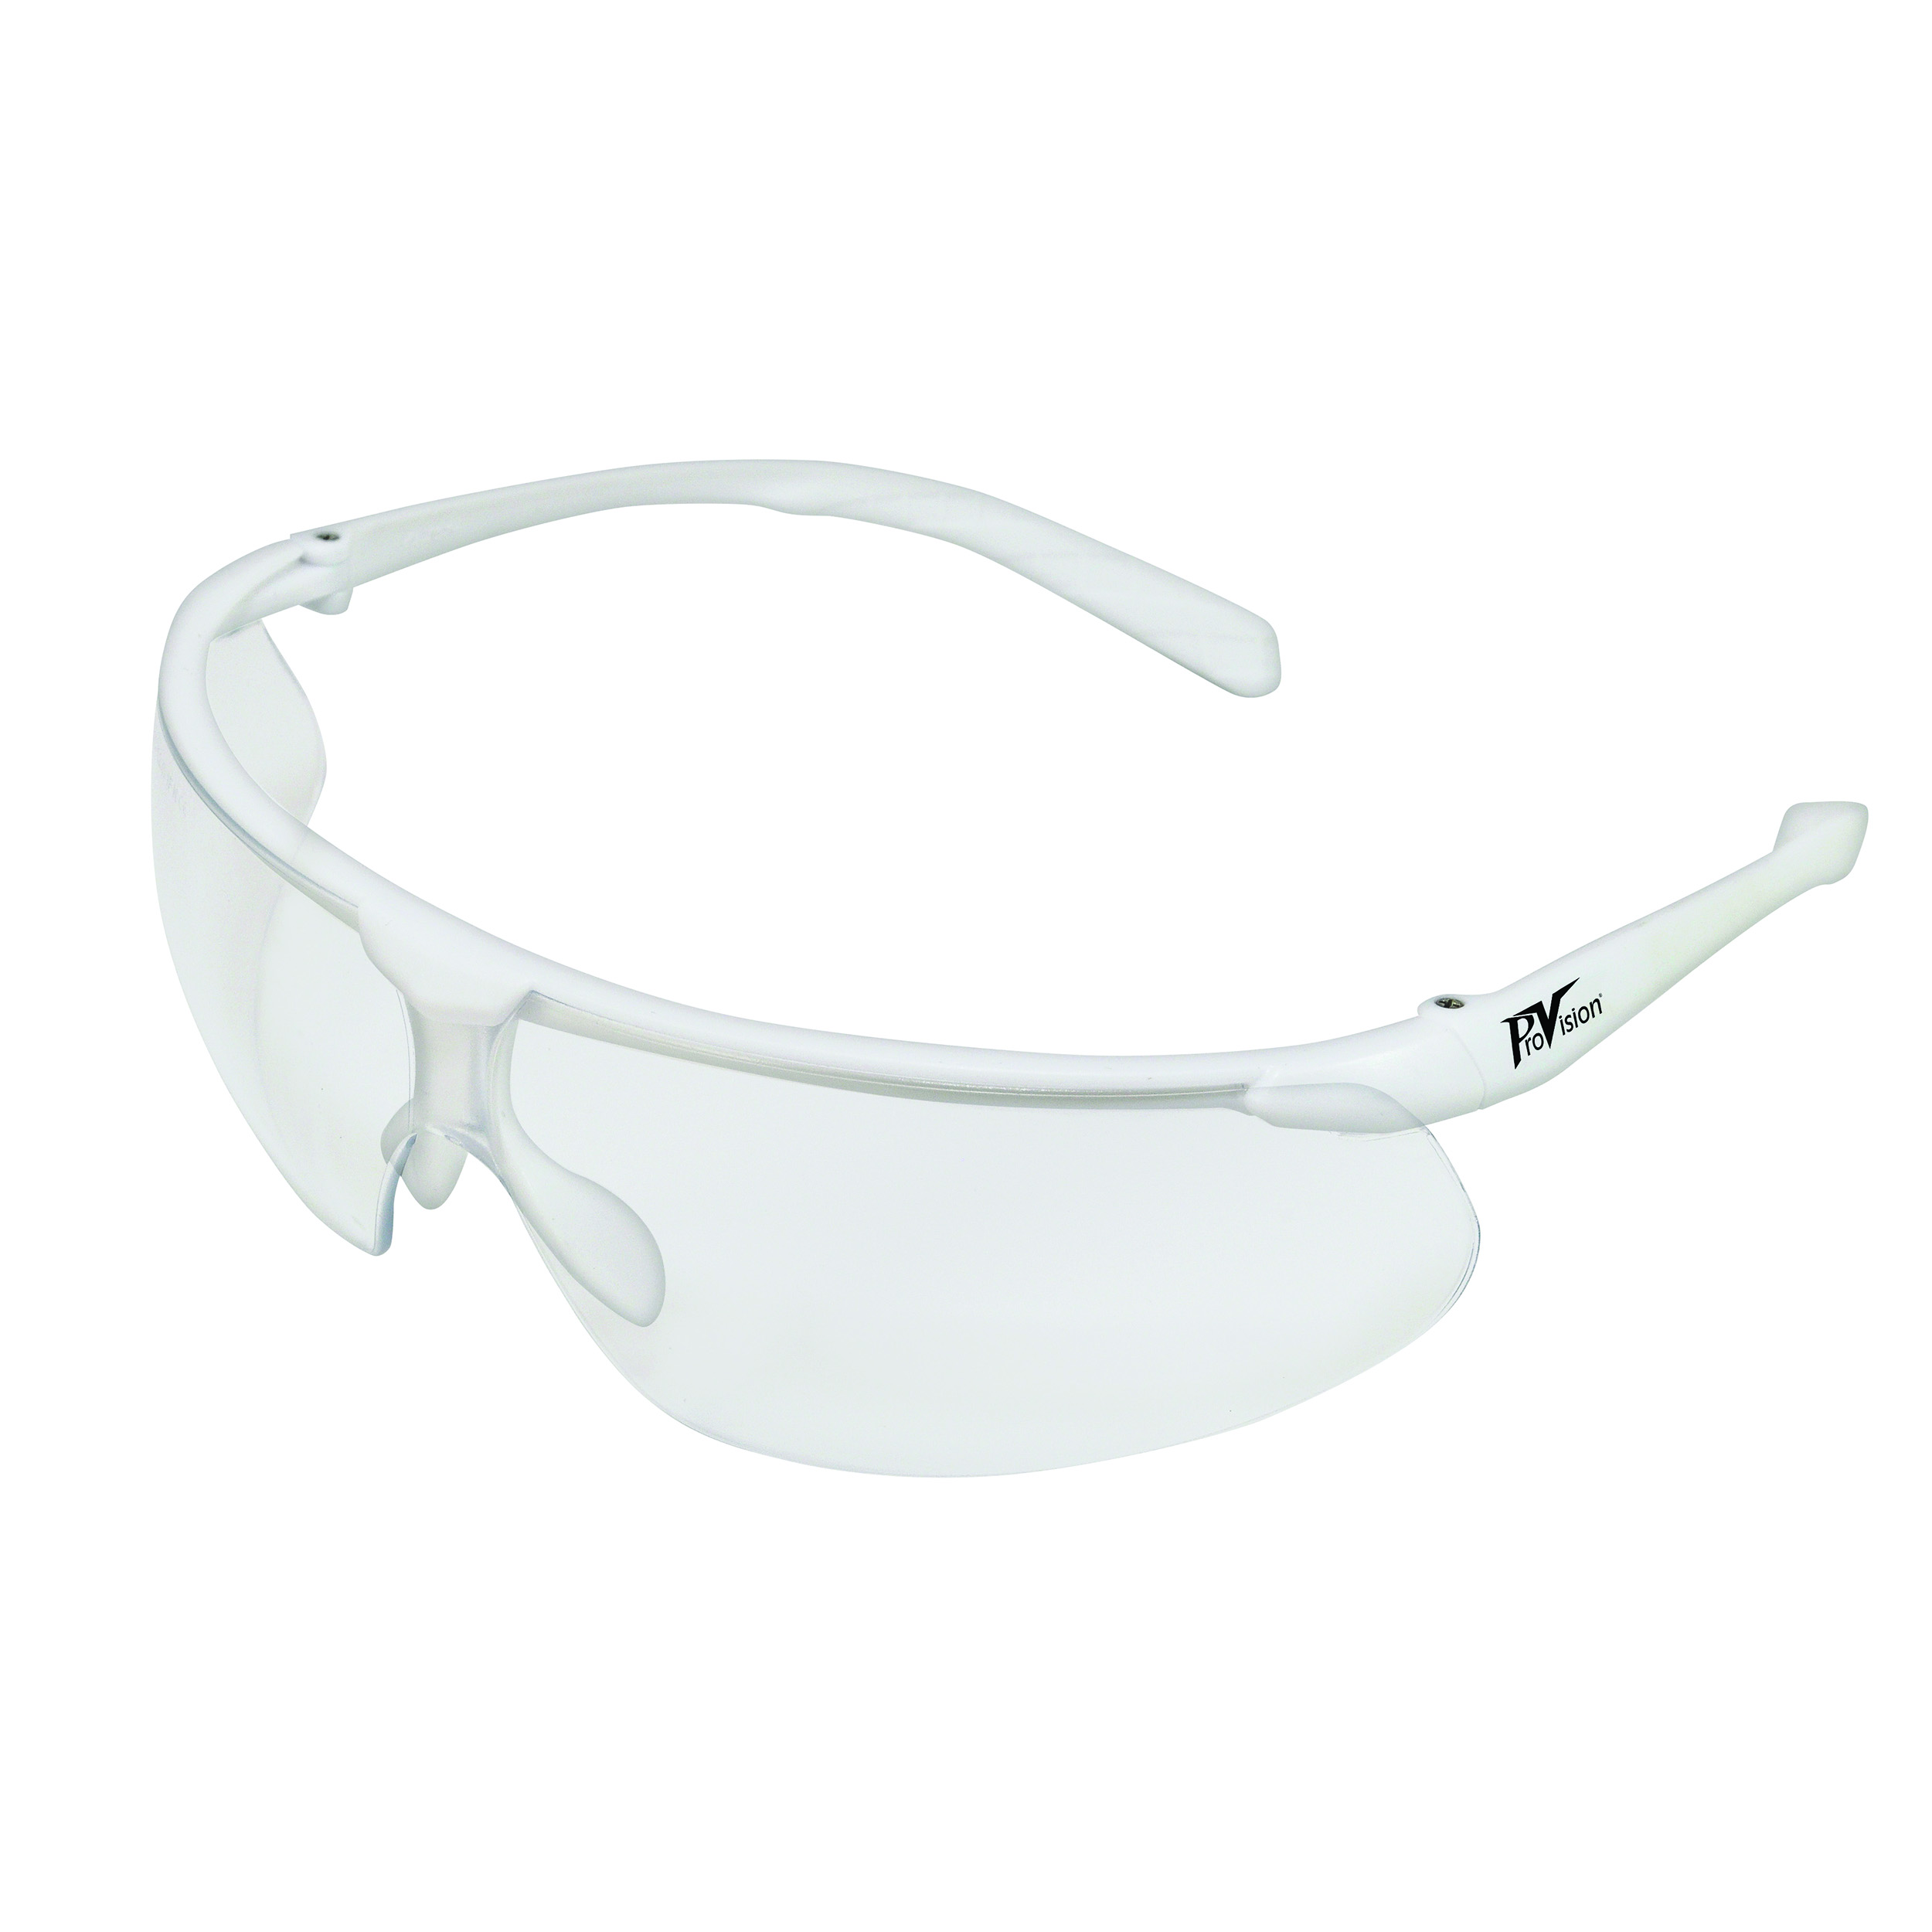 9200119 ProVision Element  Eyewear Clear Frame, Clear Lens, 3606C